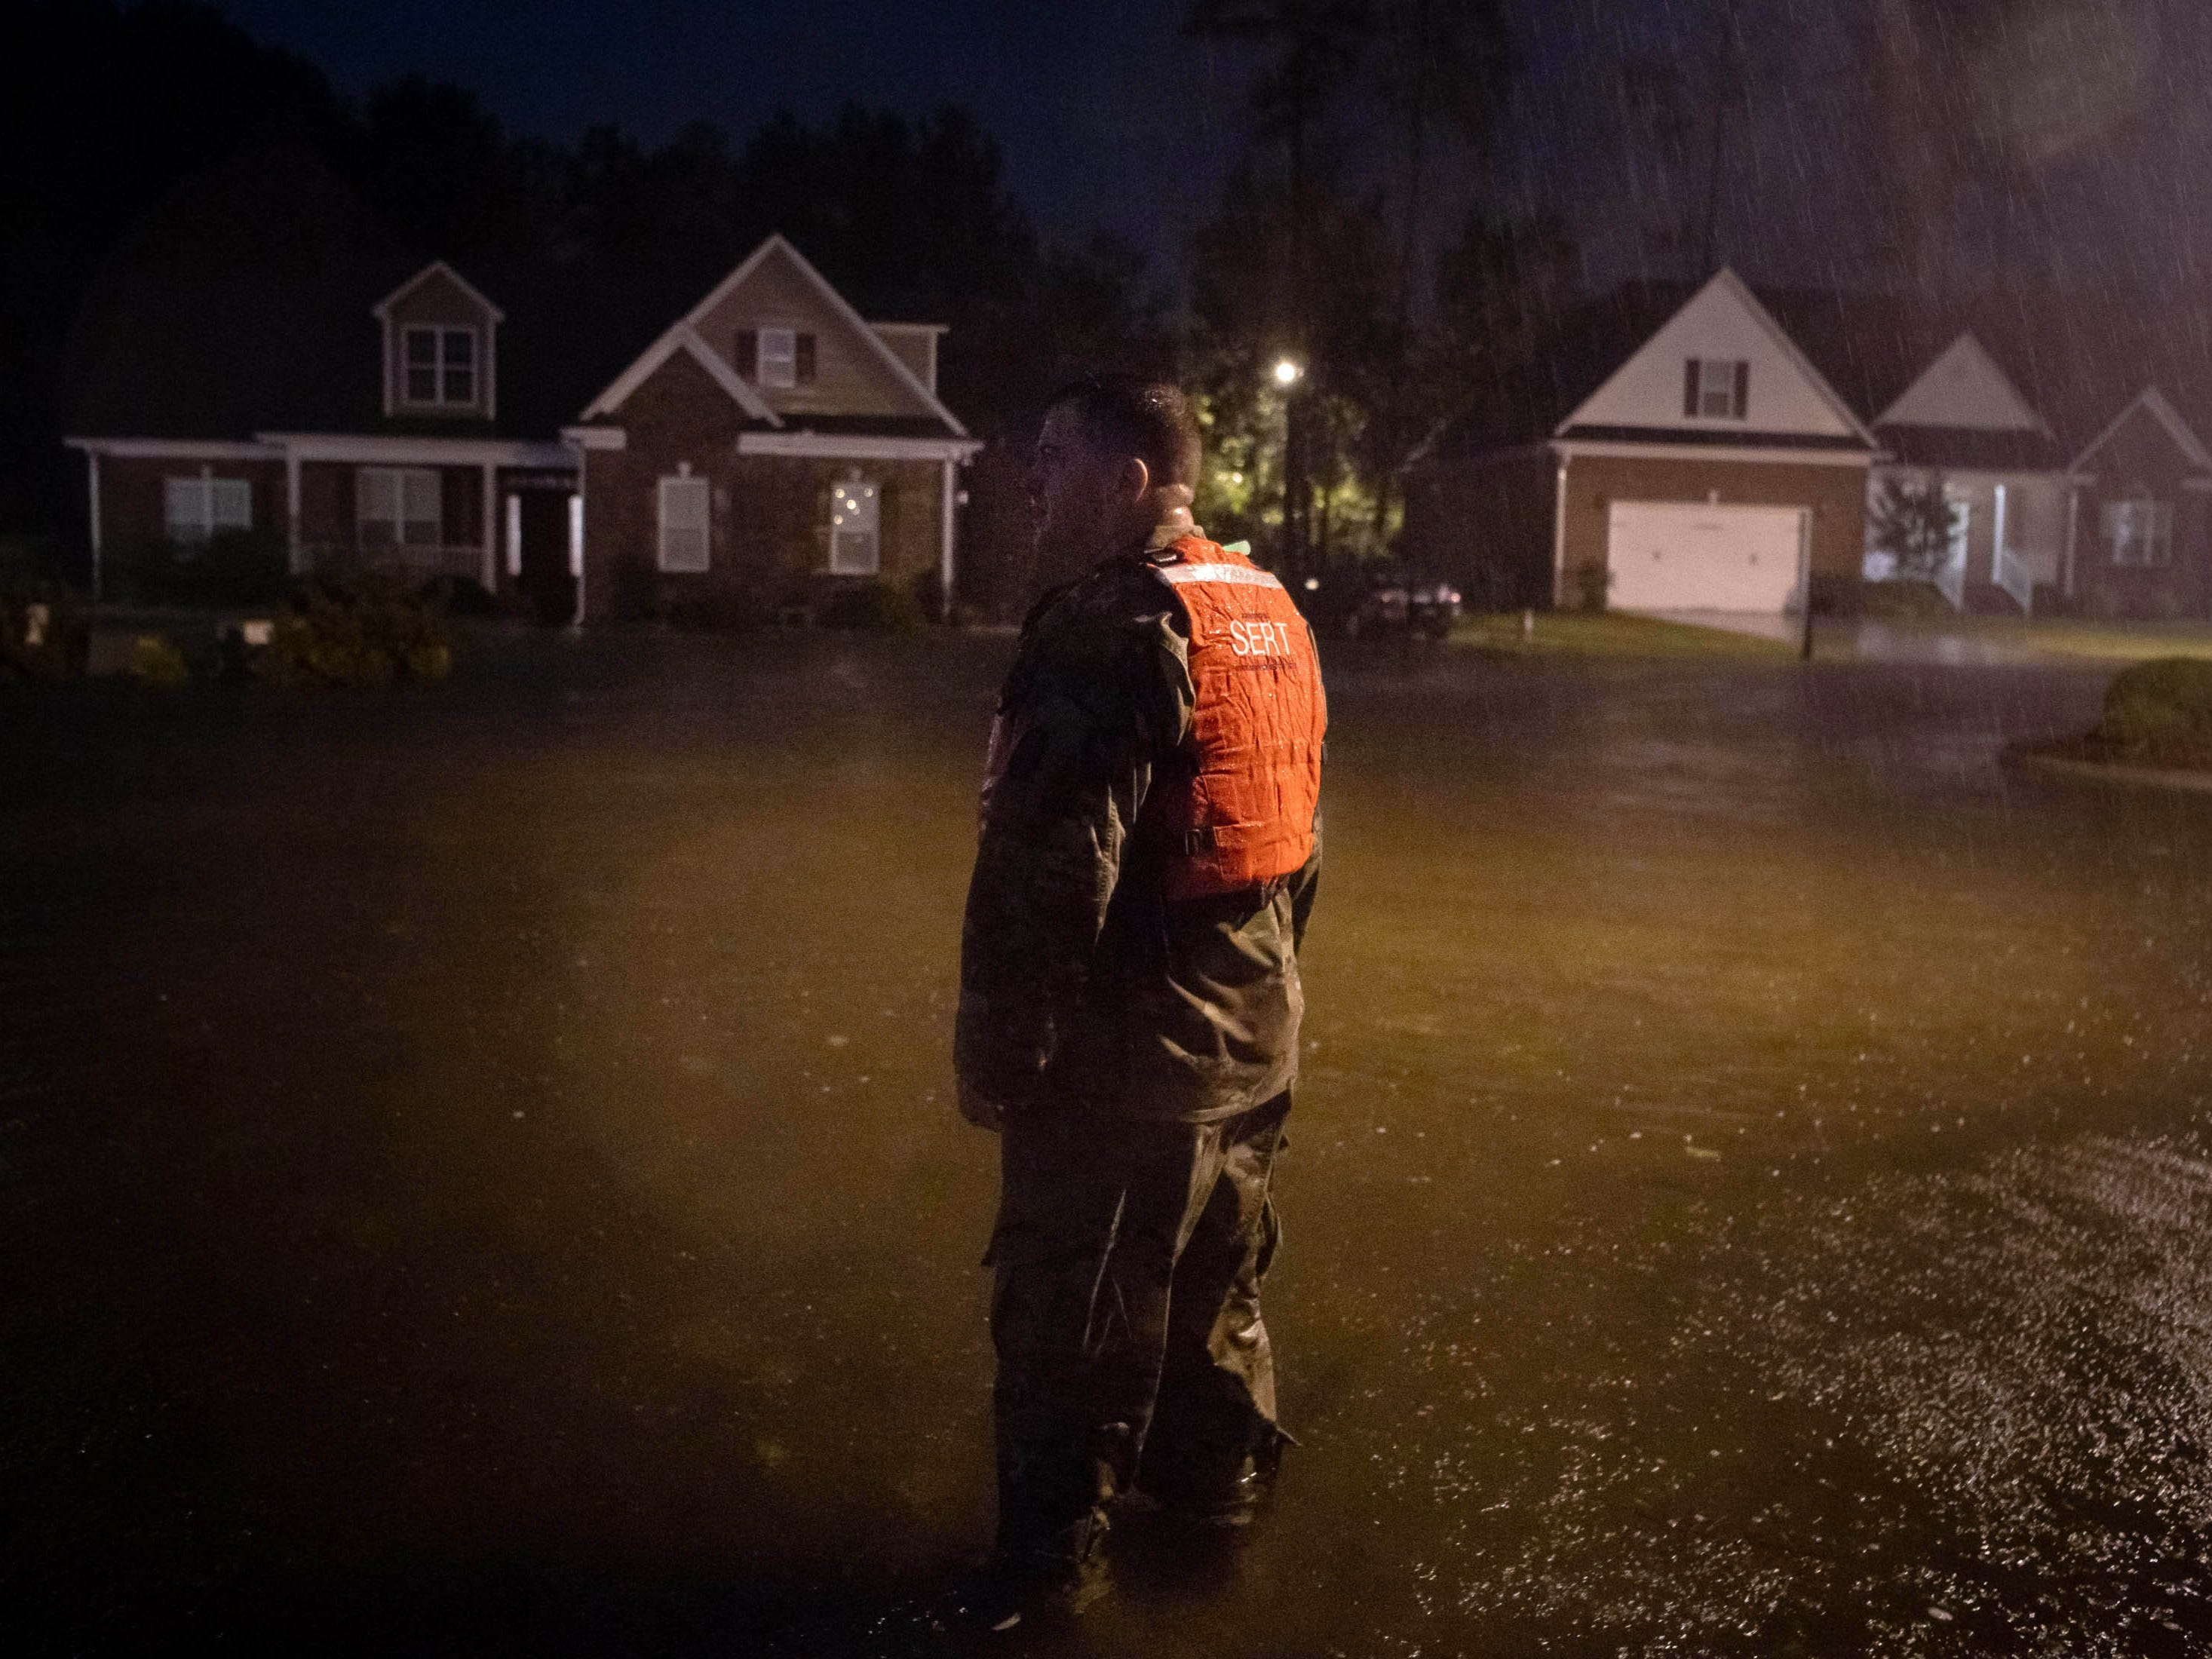 Command Sgt. Maj. Sid Baker of the North Carolina National Guard patrols a flooded neighborhood as rain from tropical storm Florence continues to fall on Lumberton, N.C., on Sept. 15, 2018.